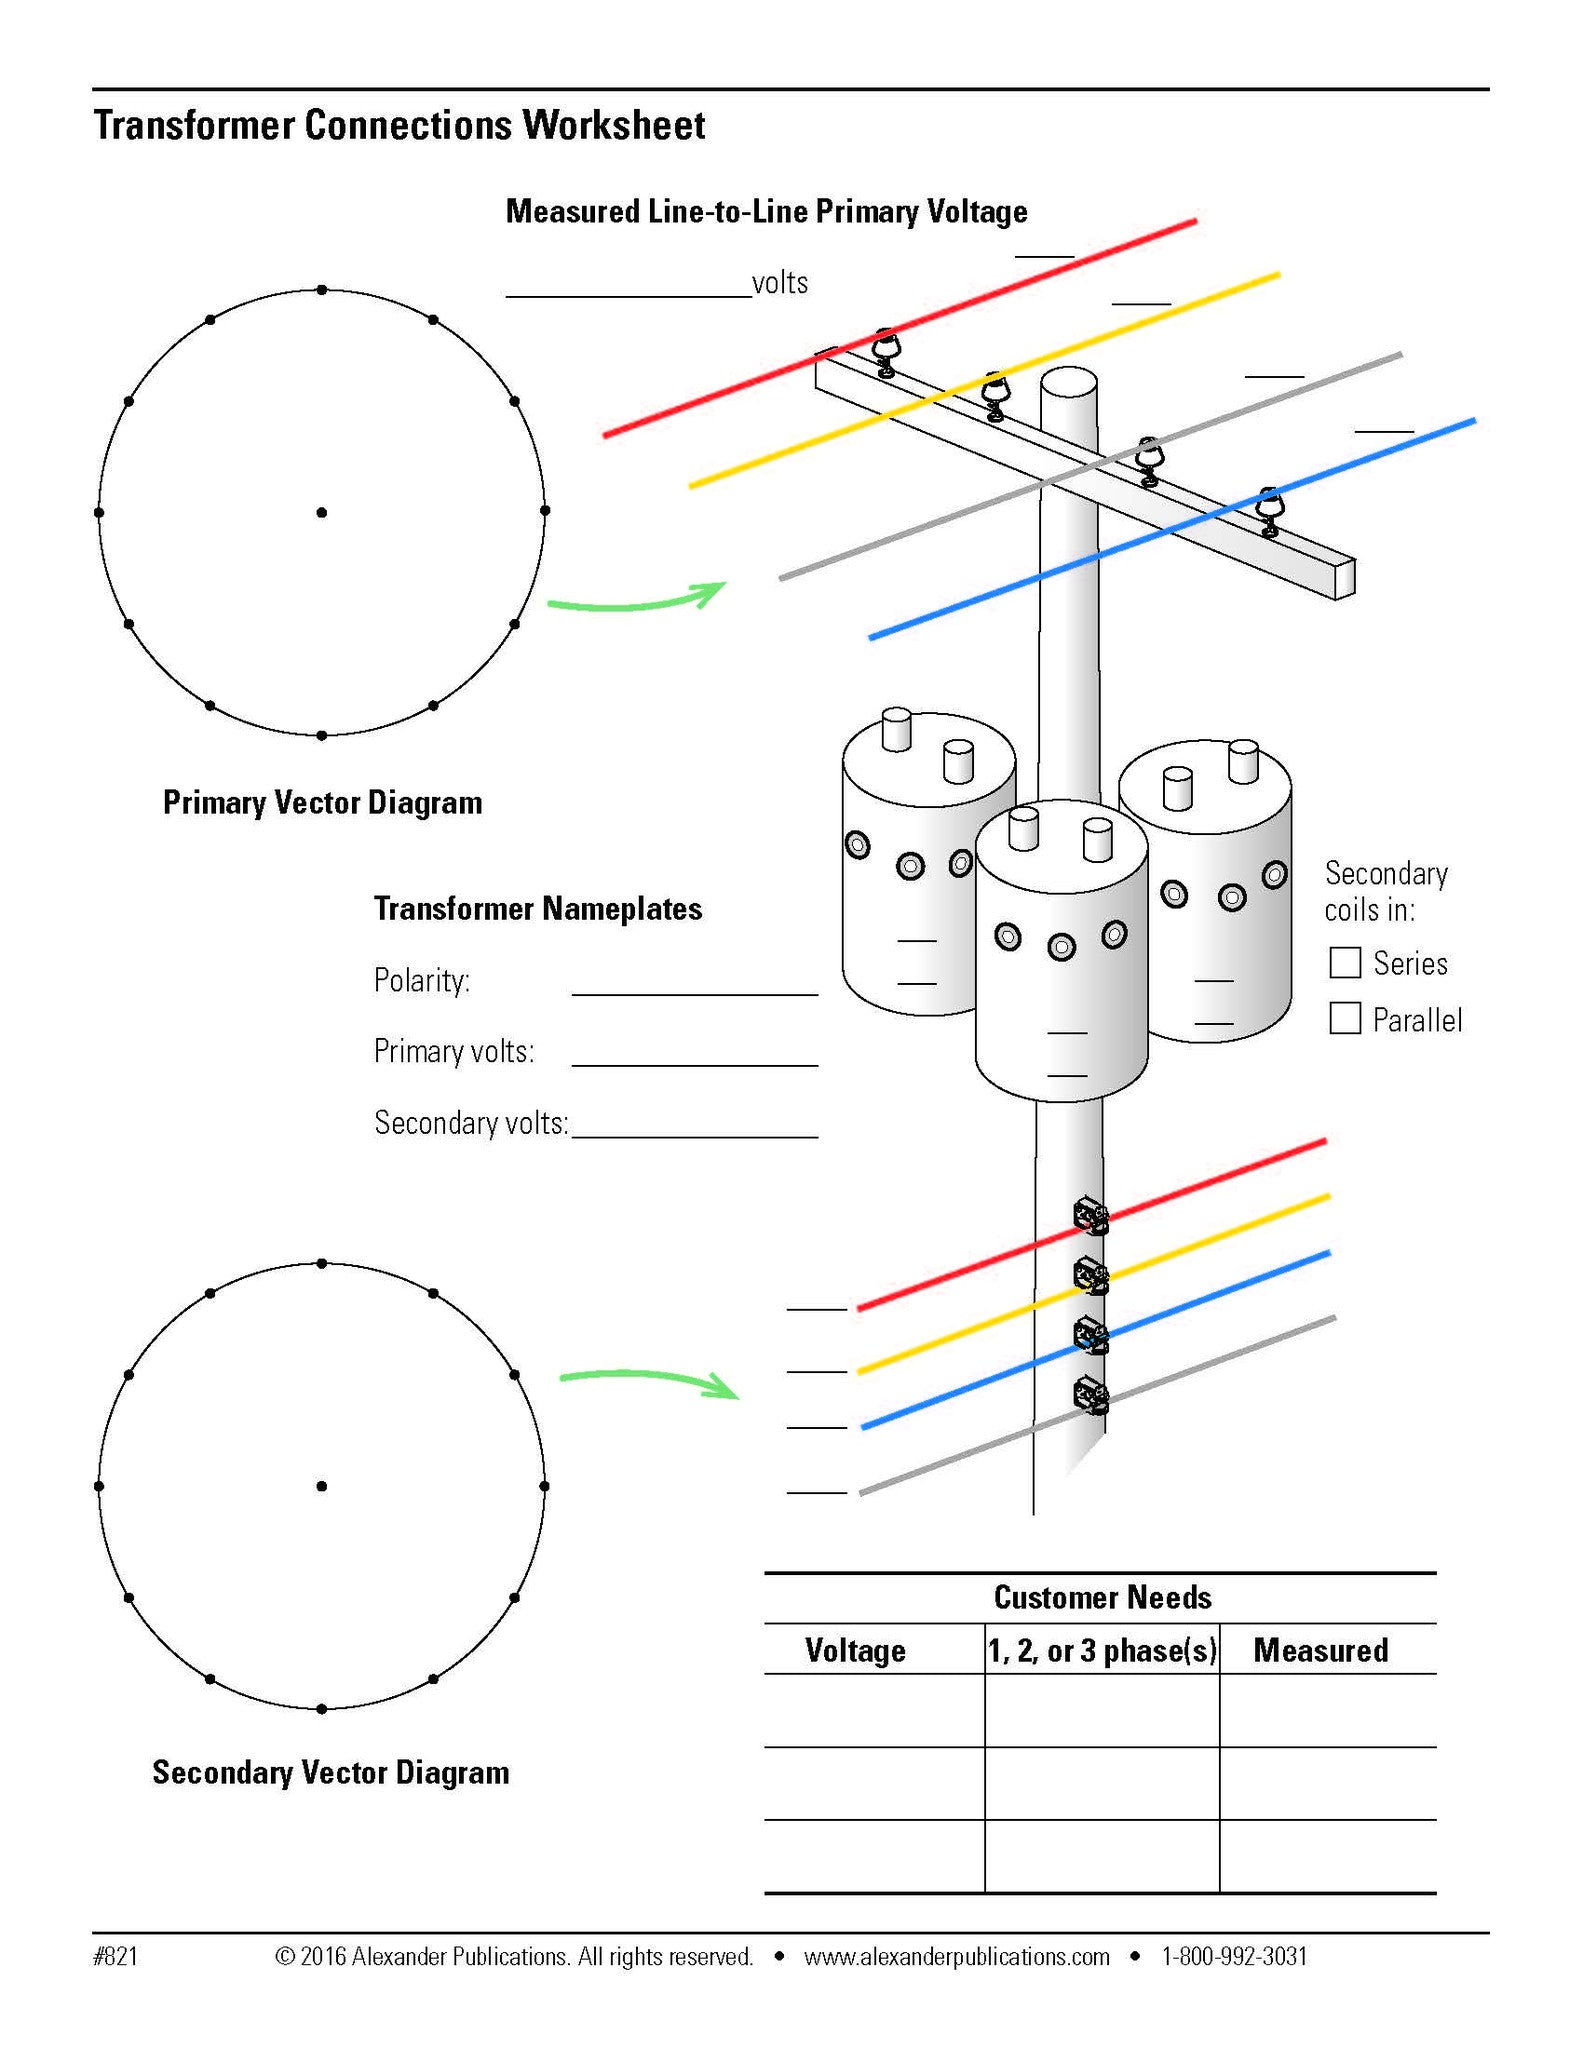 transformer connections worksheets alexander publications rh alexanderpublications com distribution transformer connection diagram auto transformer connection diagram